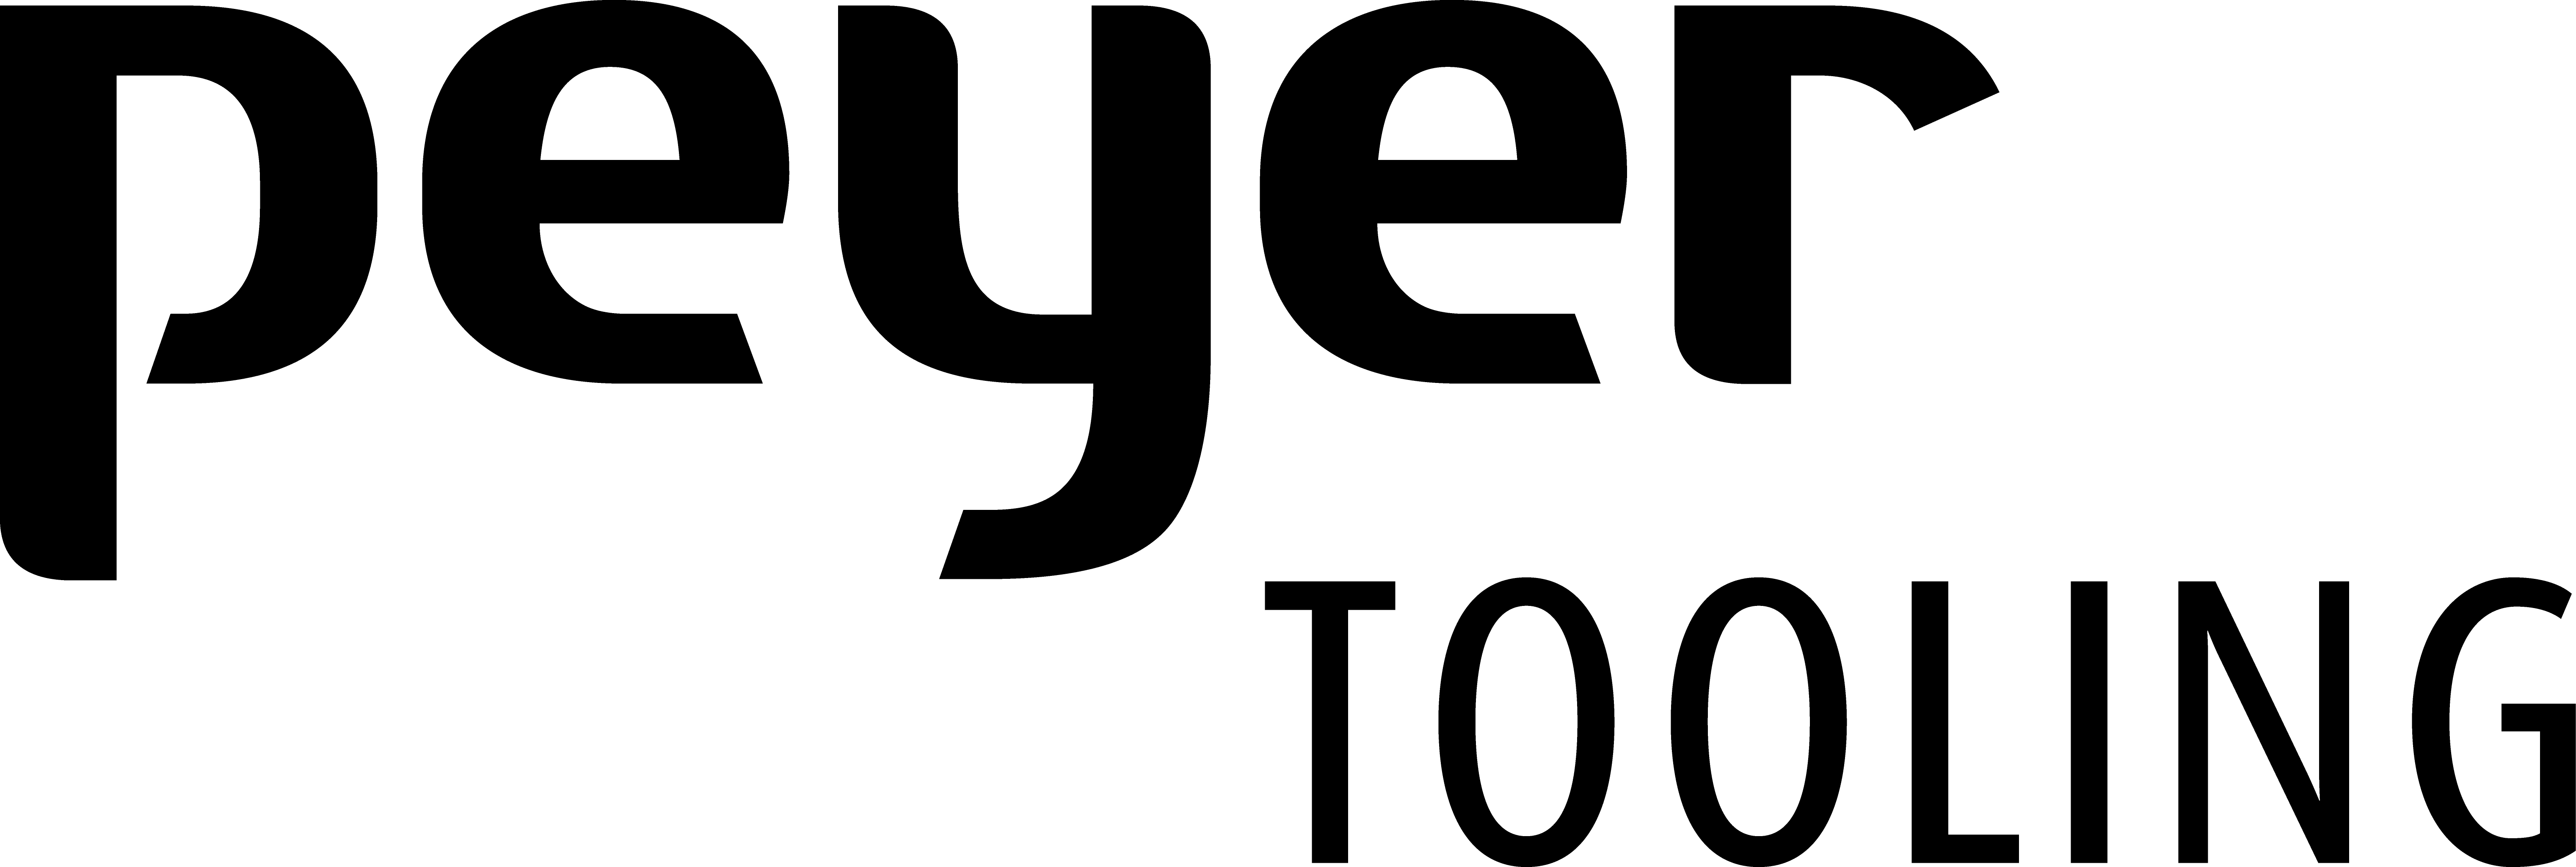 Peyer Tooling logo